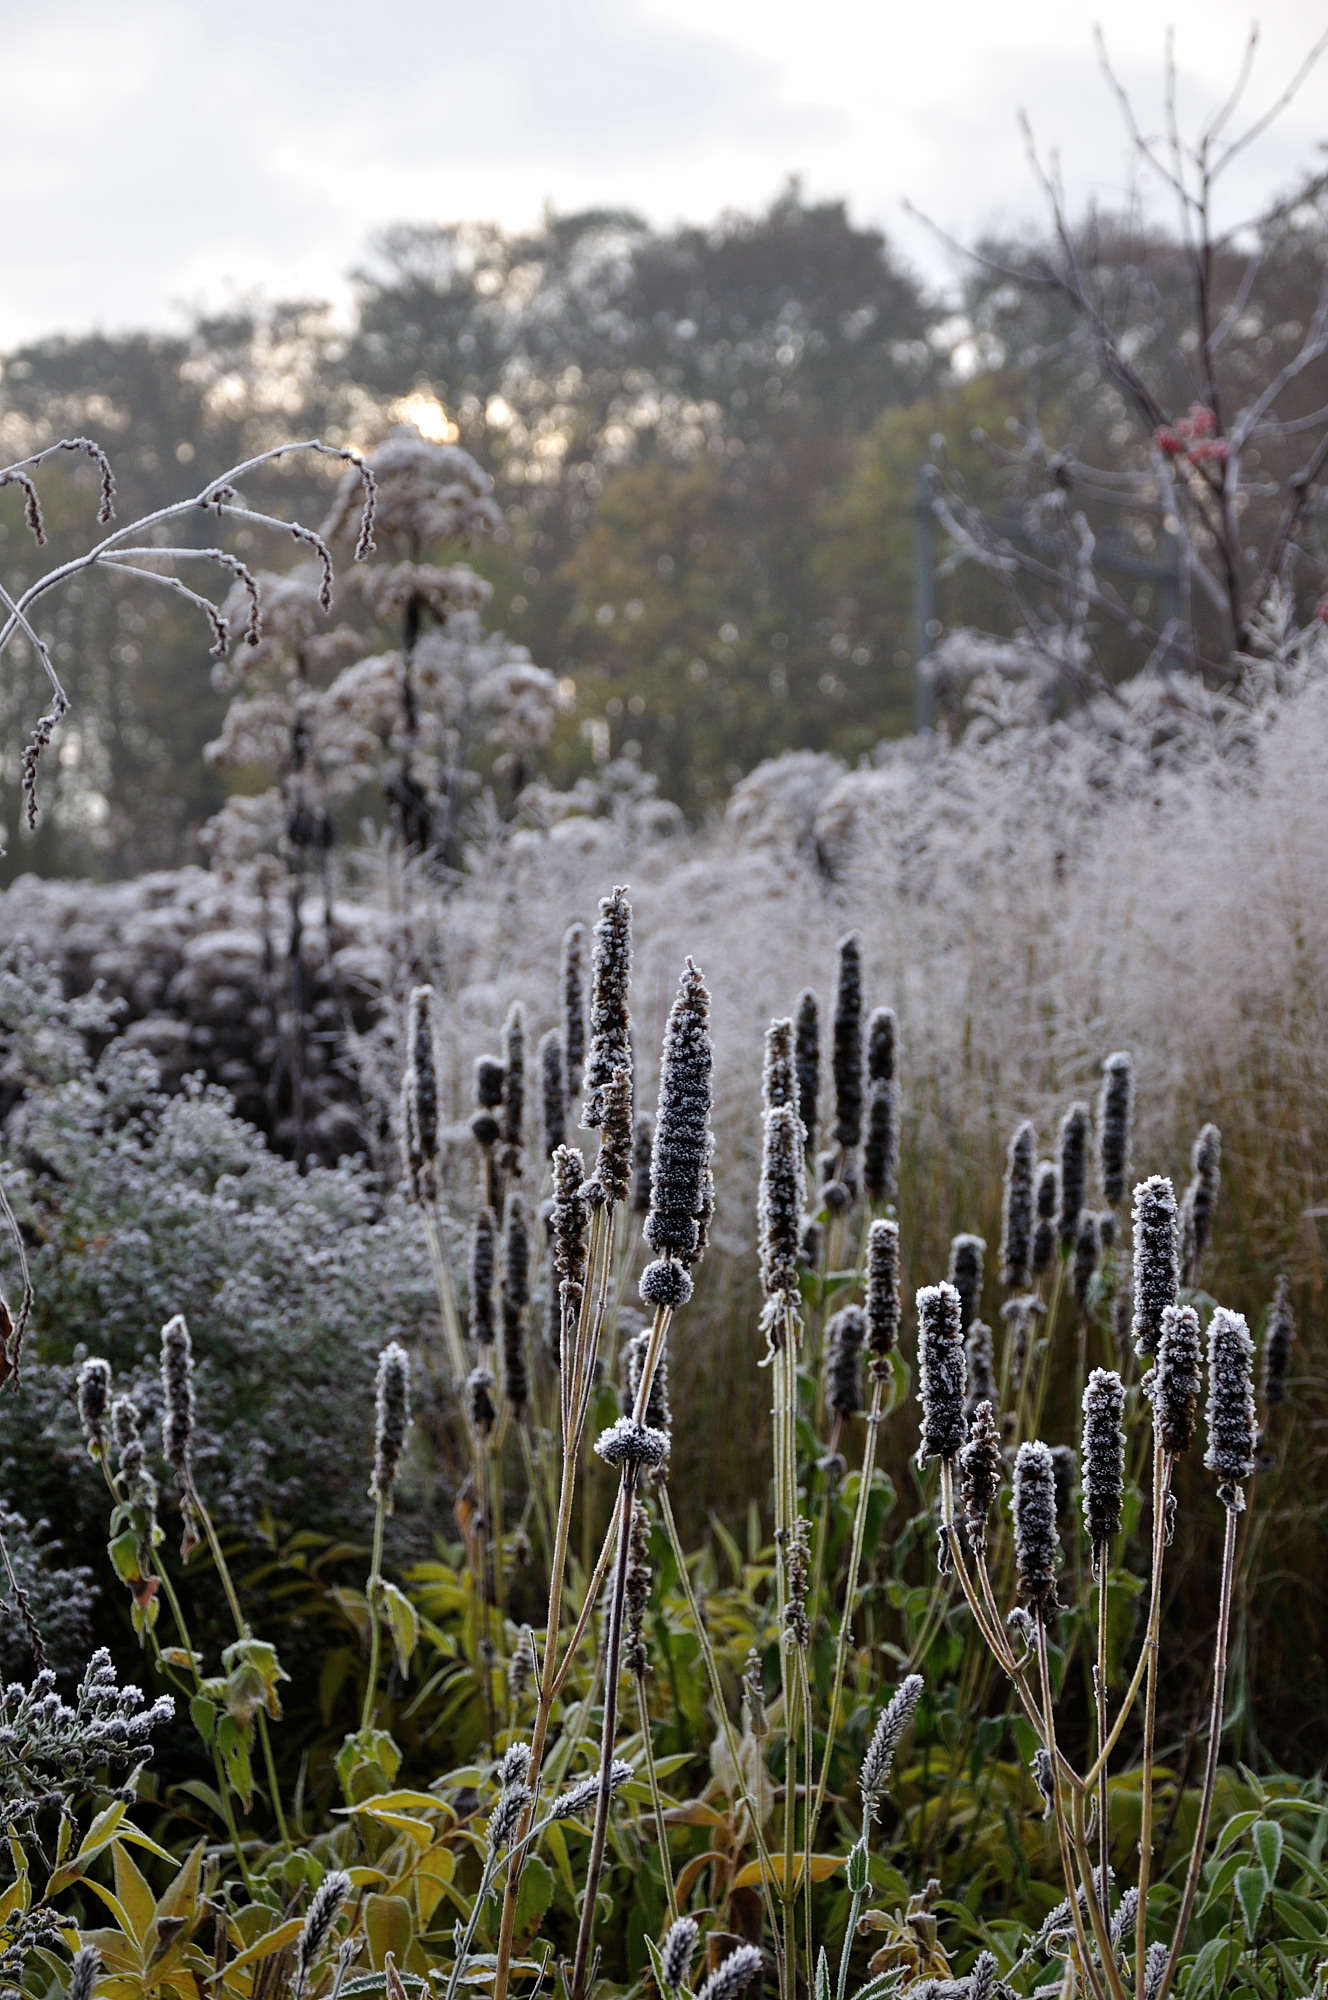 Now a dramatic black, the once purple cones of Agastache 'Black Adder' still stand tall in the frosty winter garden.